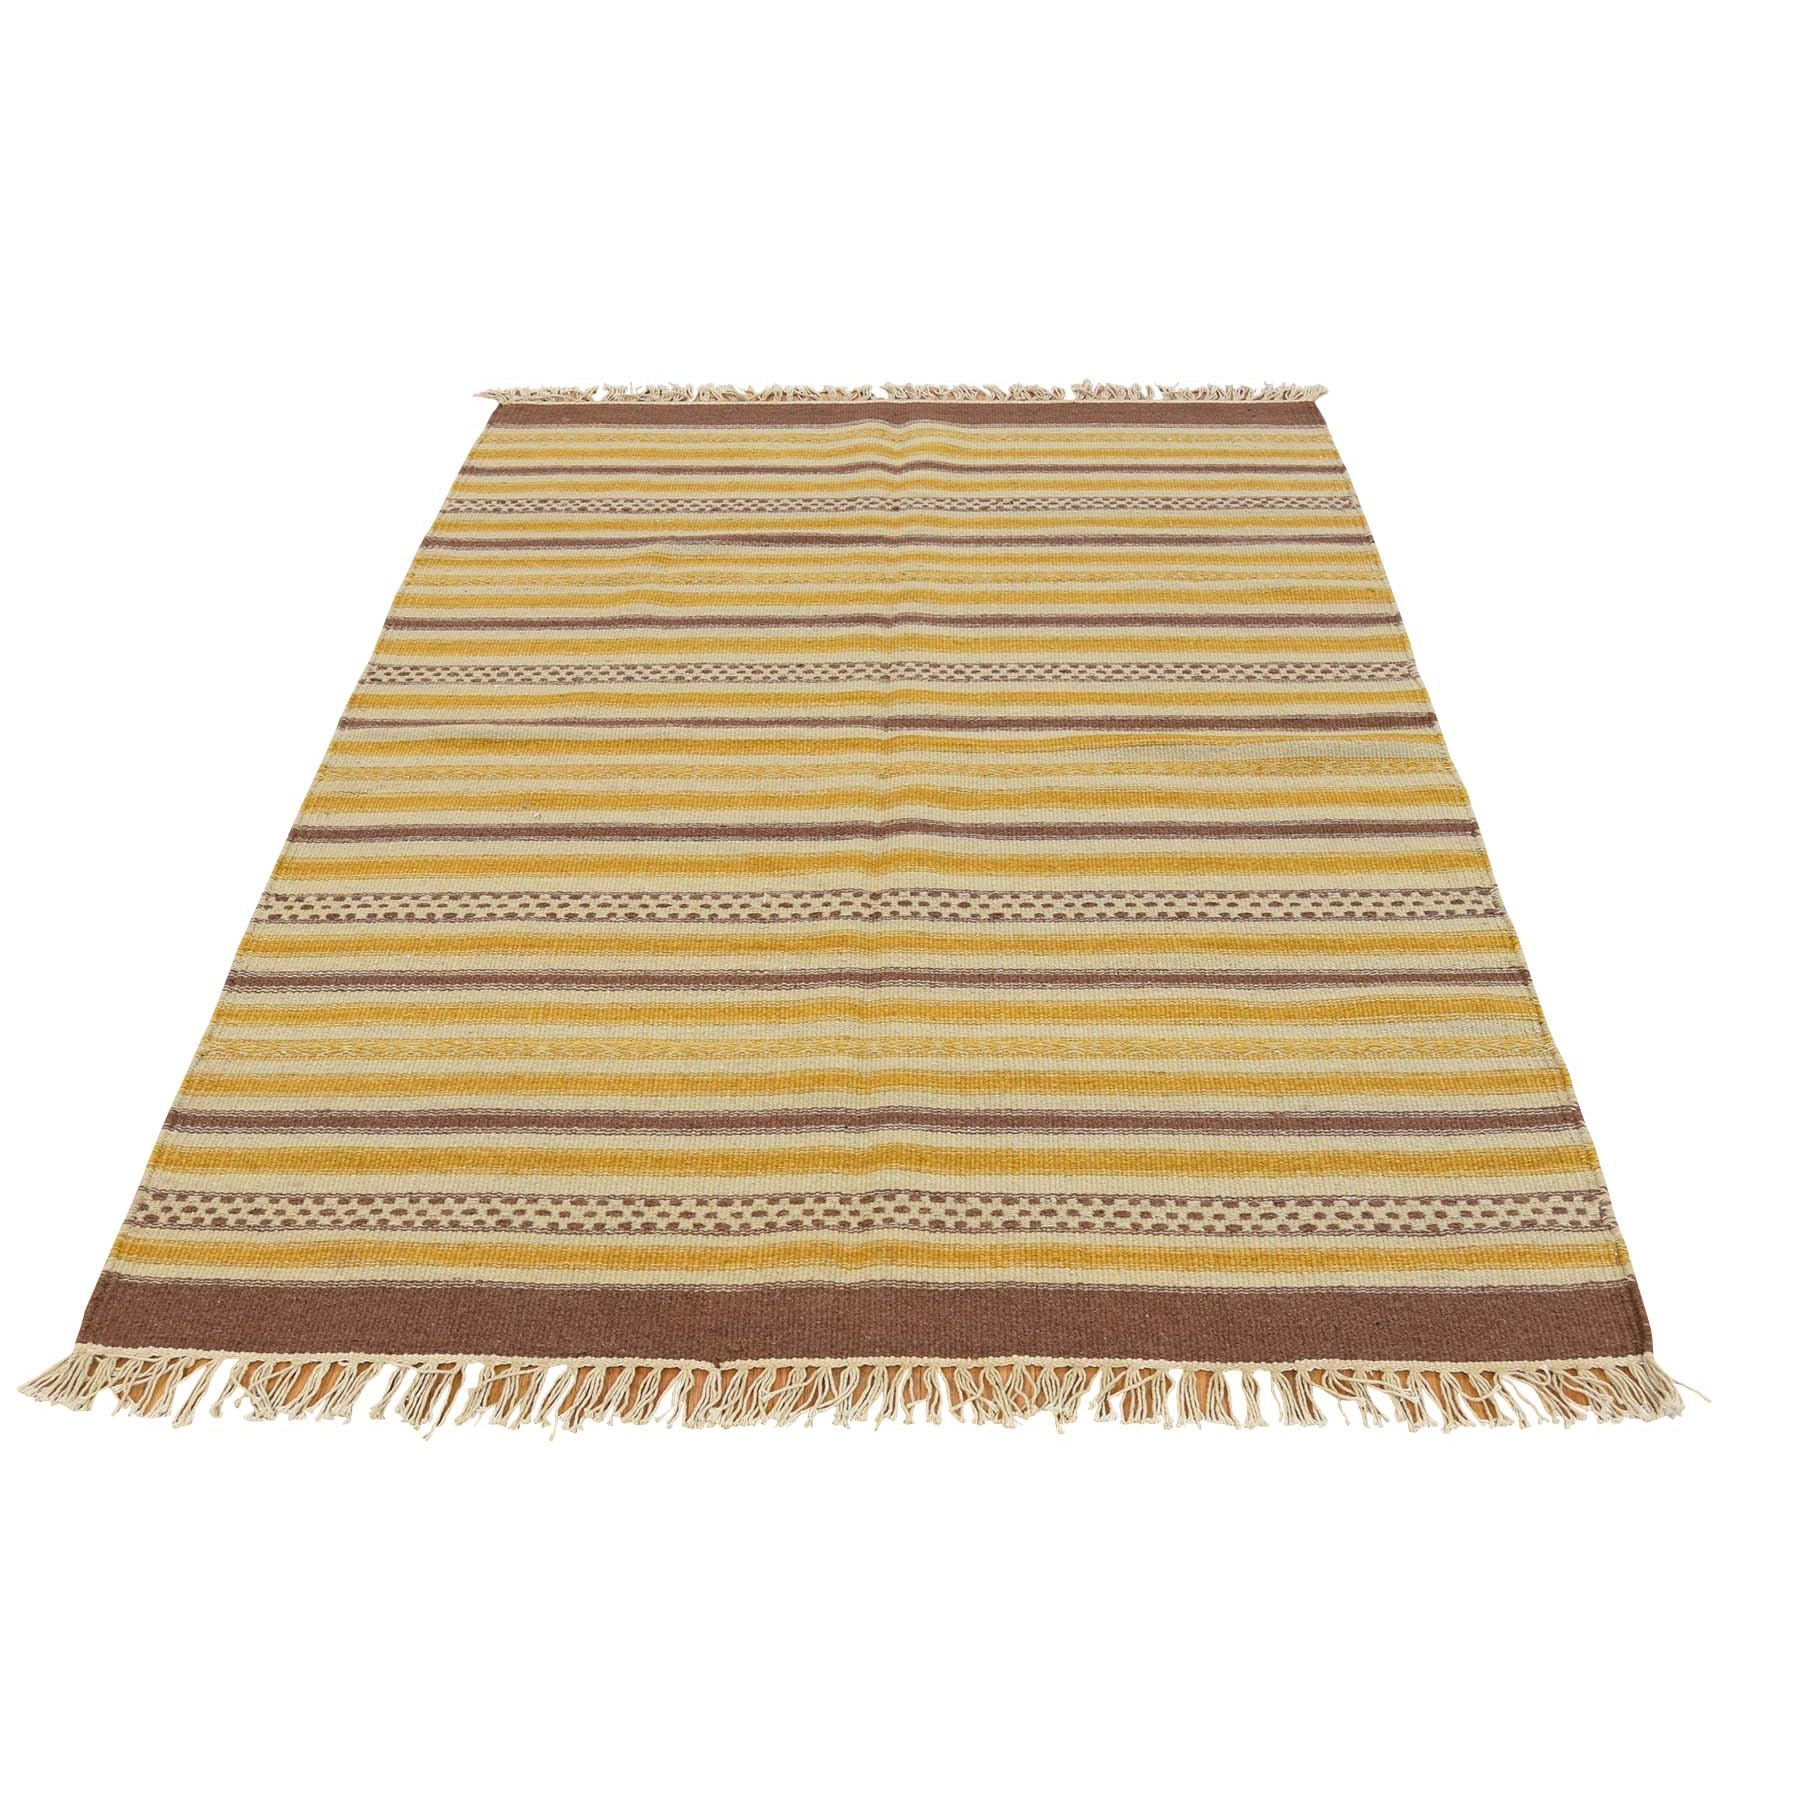 2'10''X5' Hand Woven Striped Durie Kilim Reversible Flat Weave Rug moac79cc